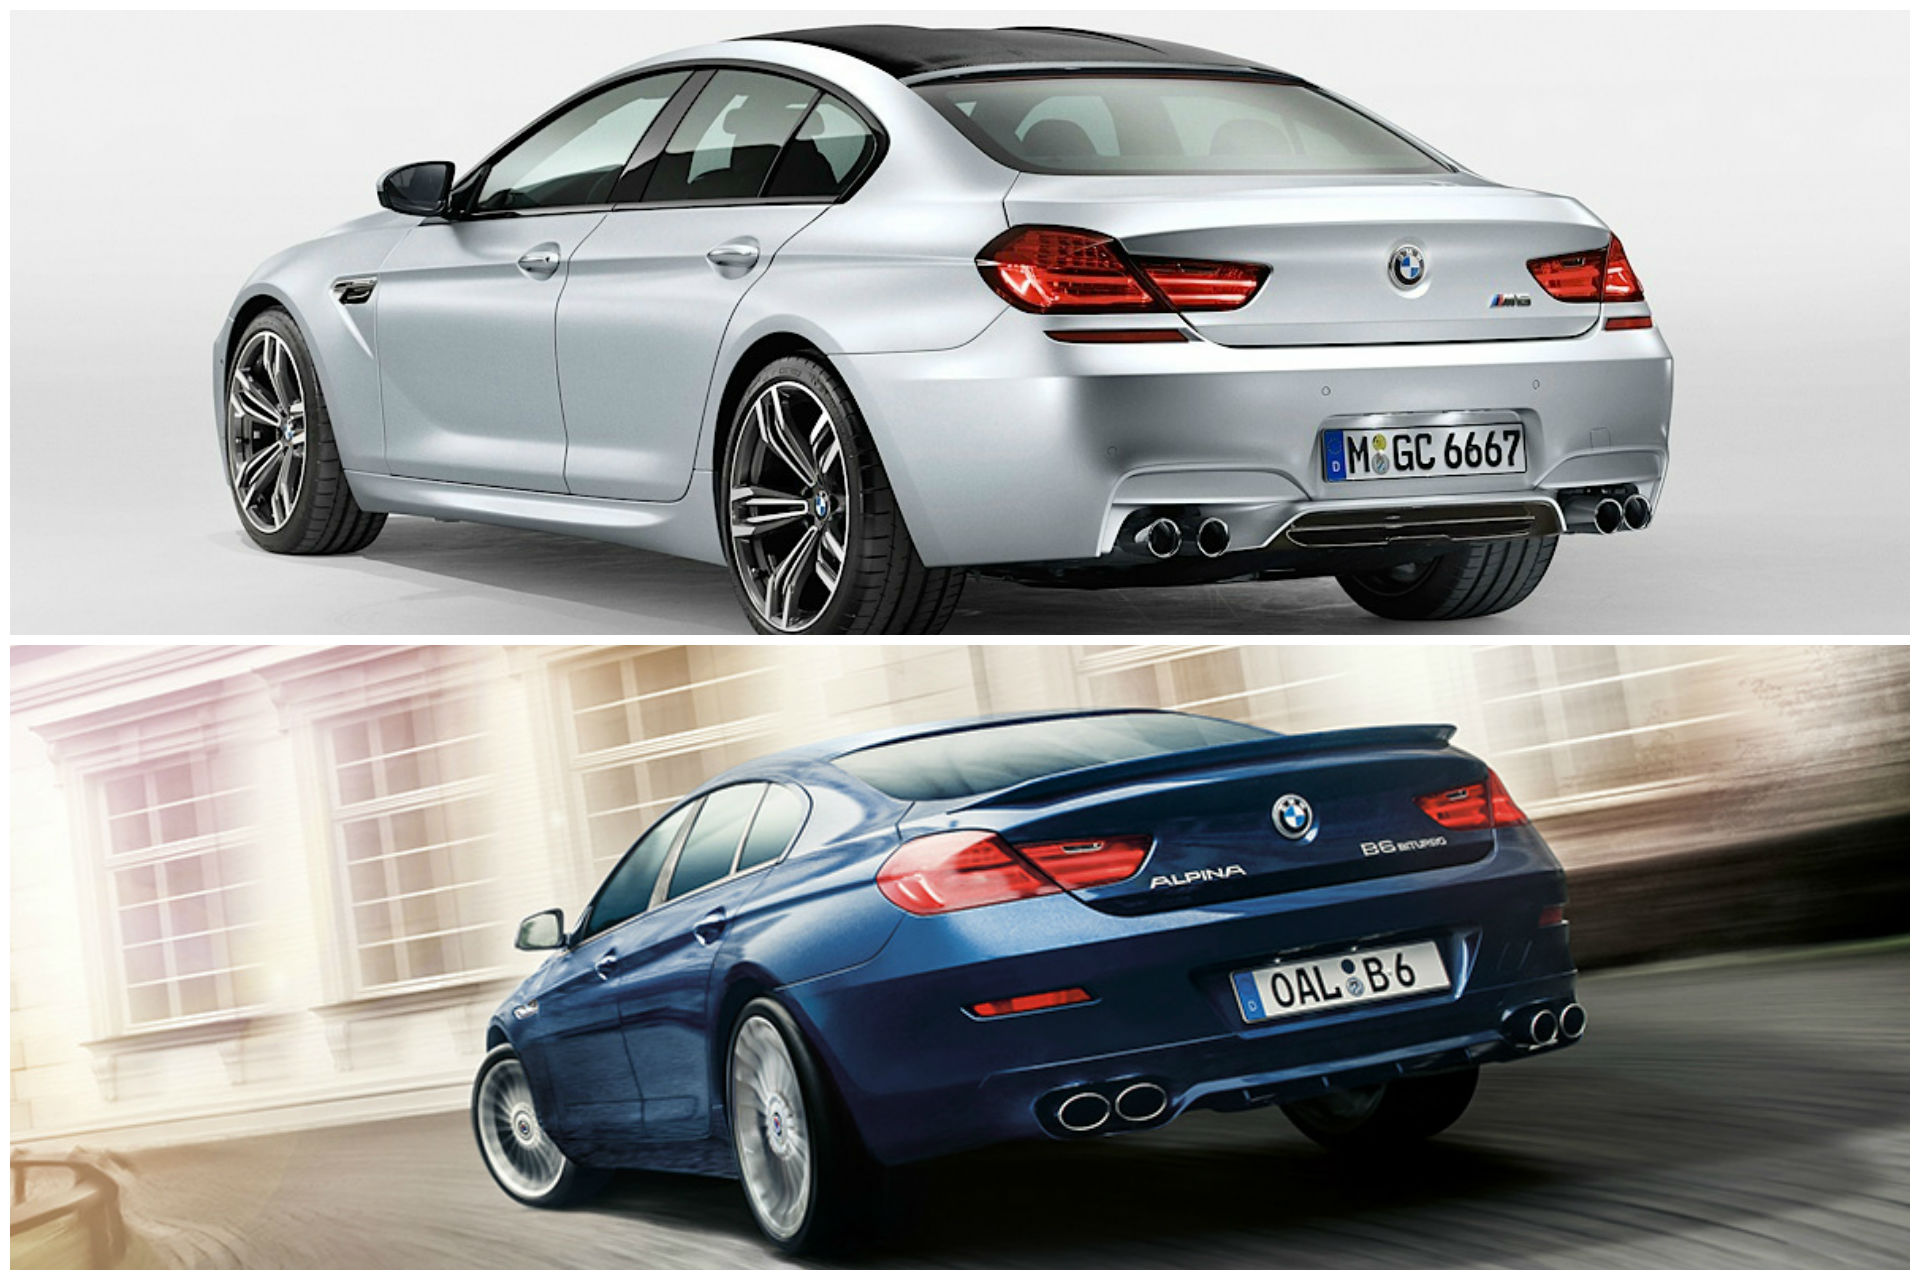 Bmw M6 Gran Coupe Vs Alpina B6 Gran Coupe What Makes Them